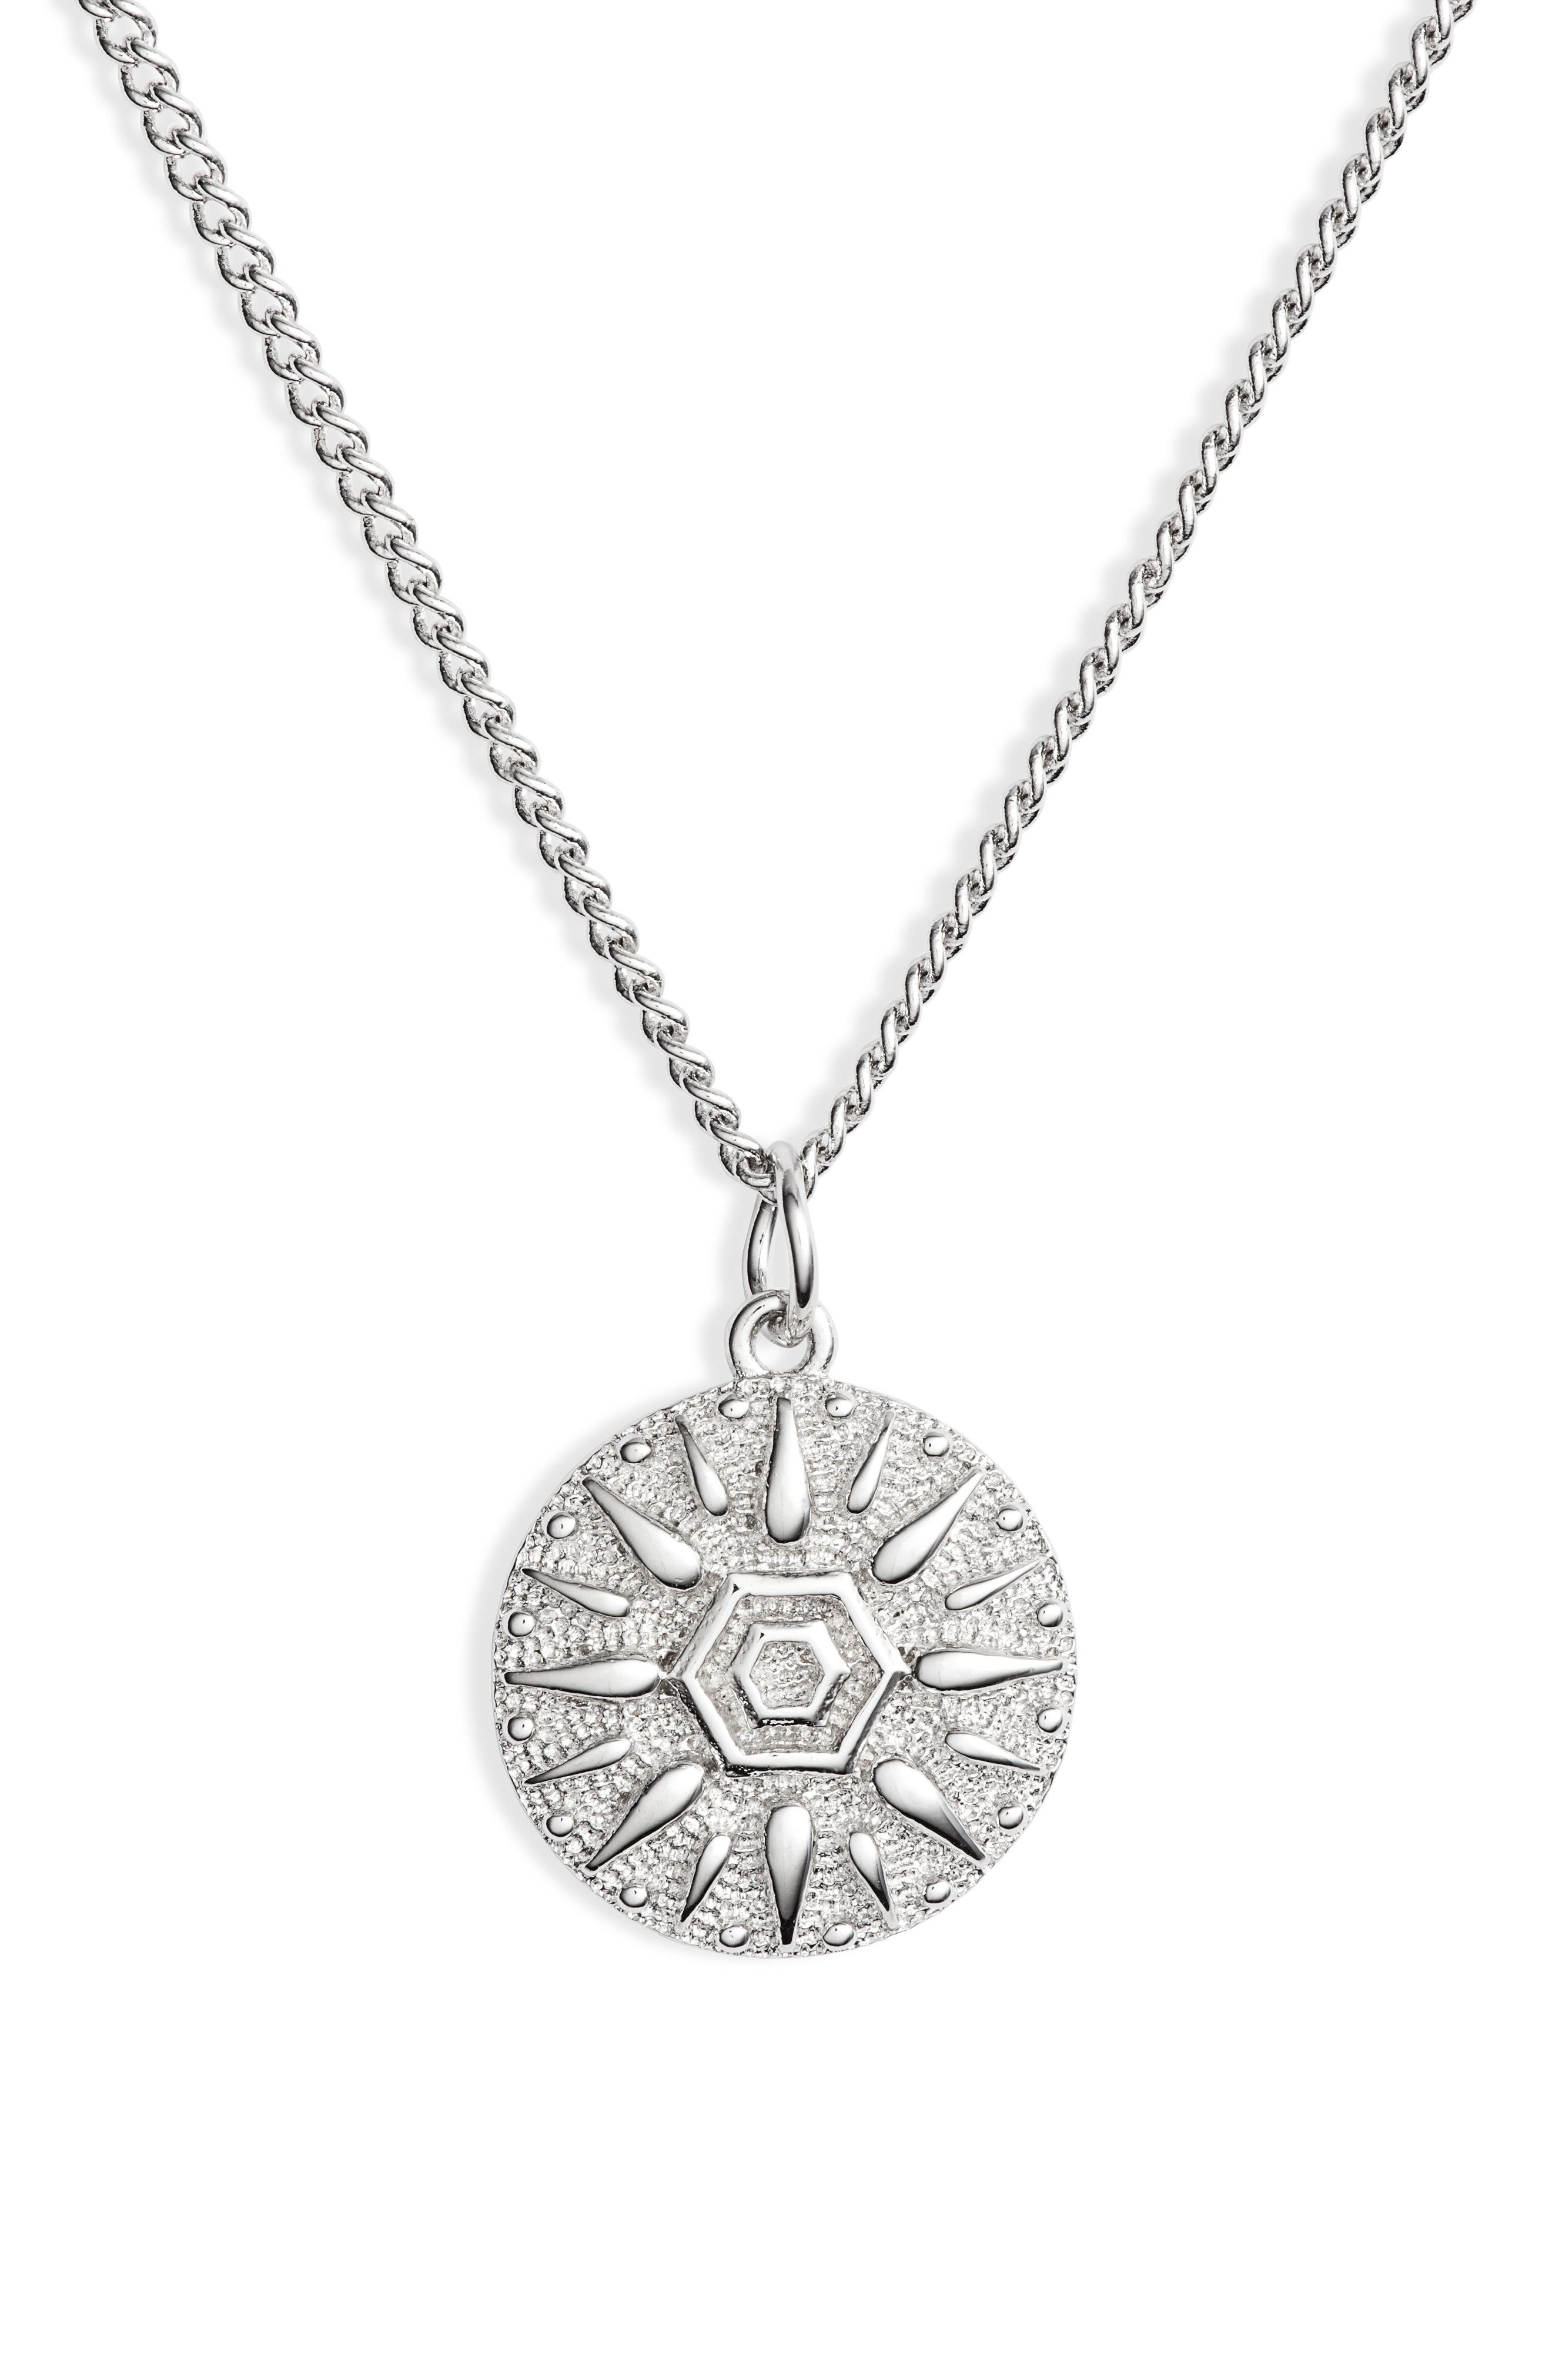 A gleaming sun disk pendant dangles elegantly from a long, delicate chain. Style Name: Sterling Forever Sun Disk Pendant Necklace. Style Number: 5799856. Available in stores.